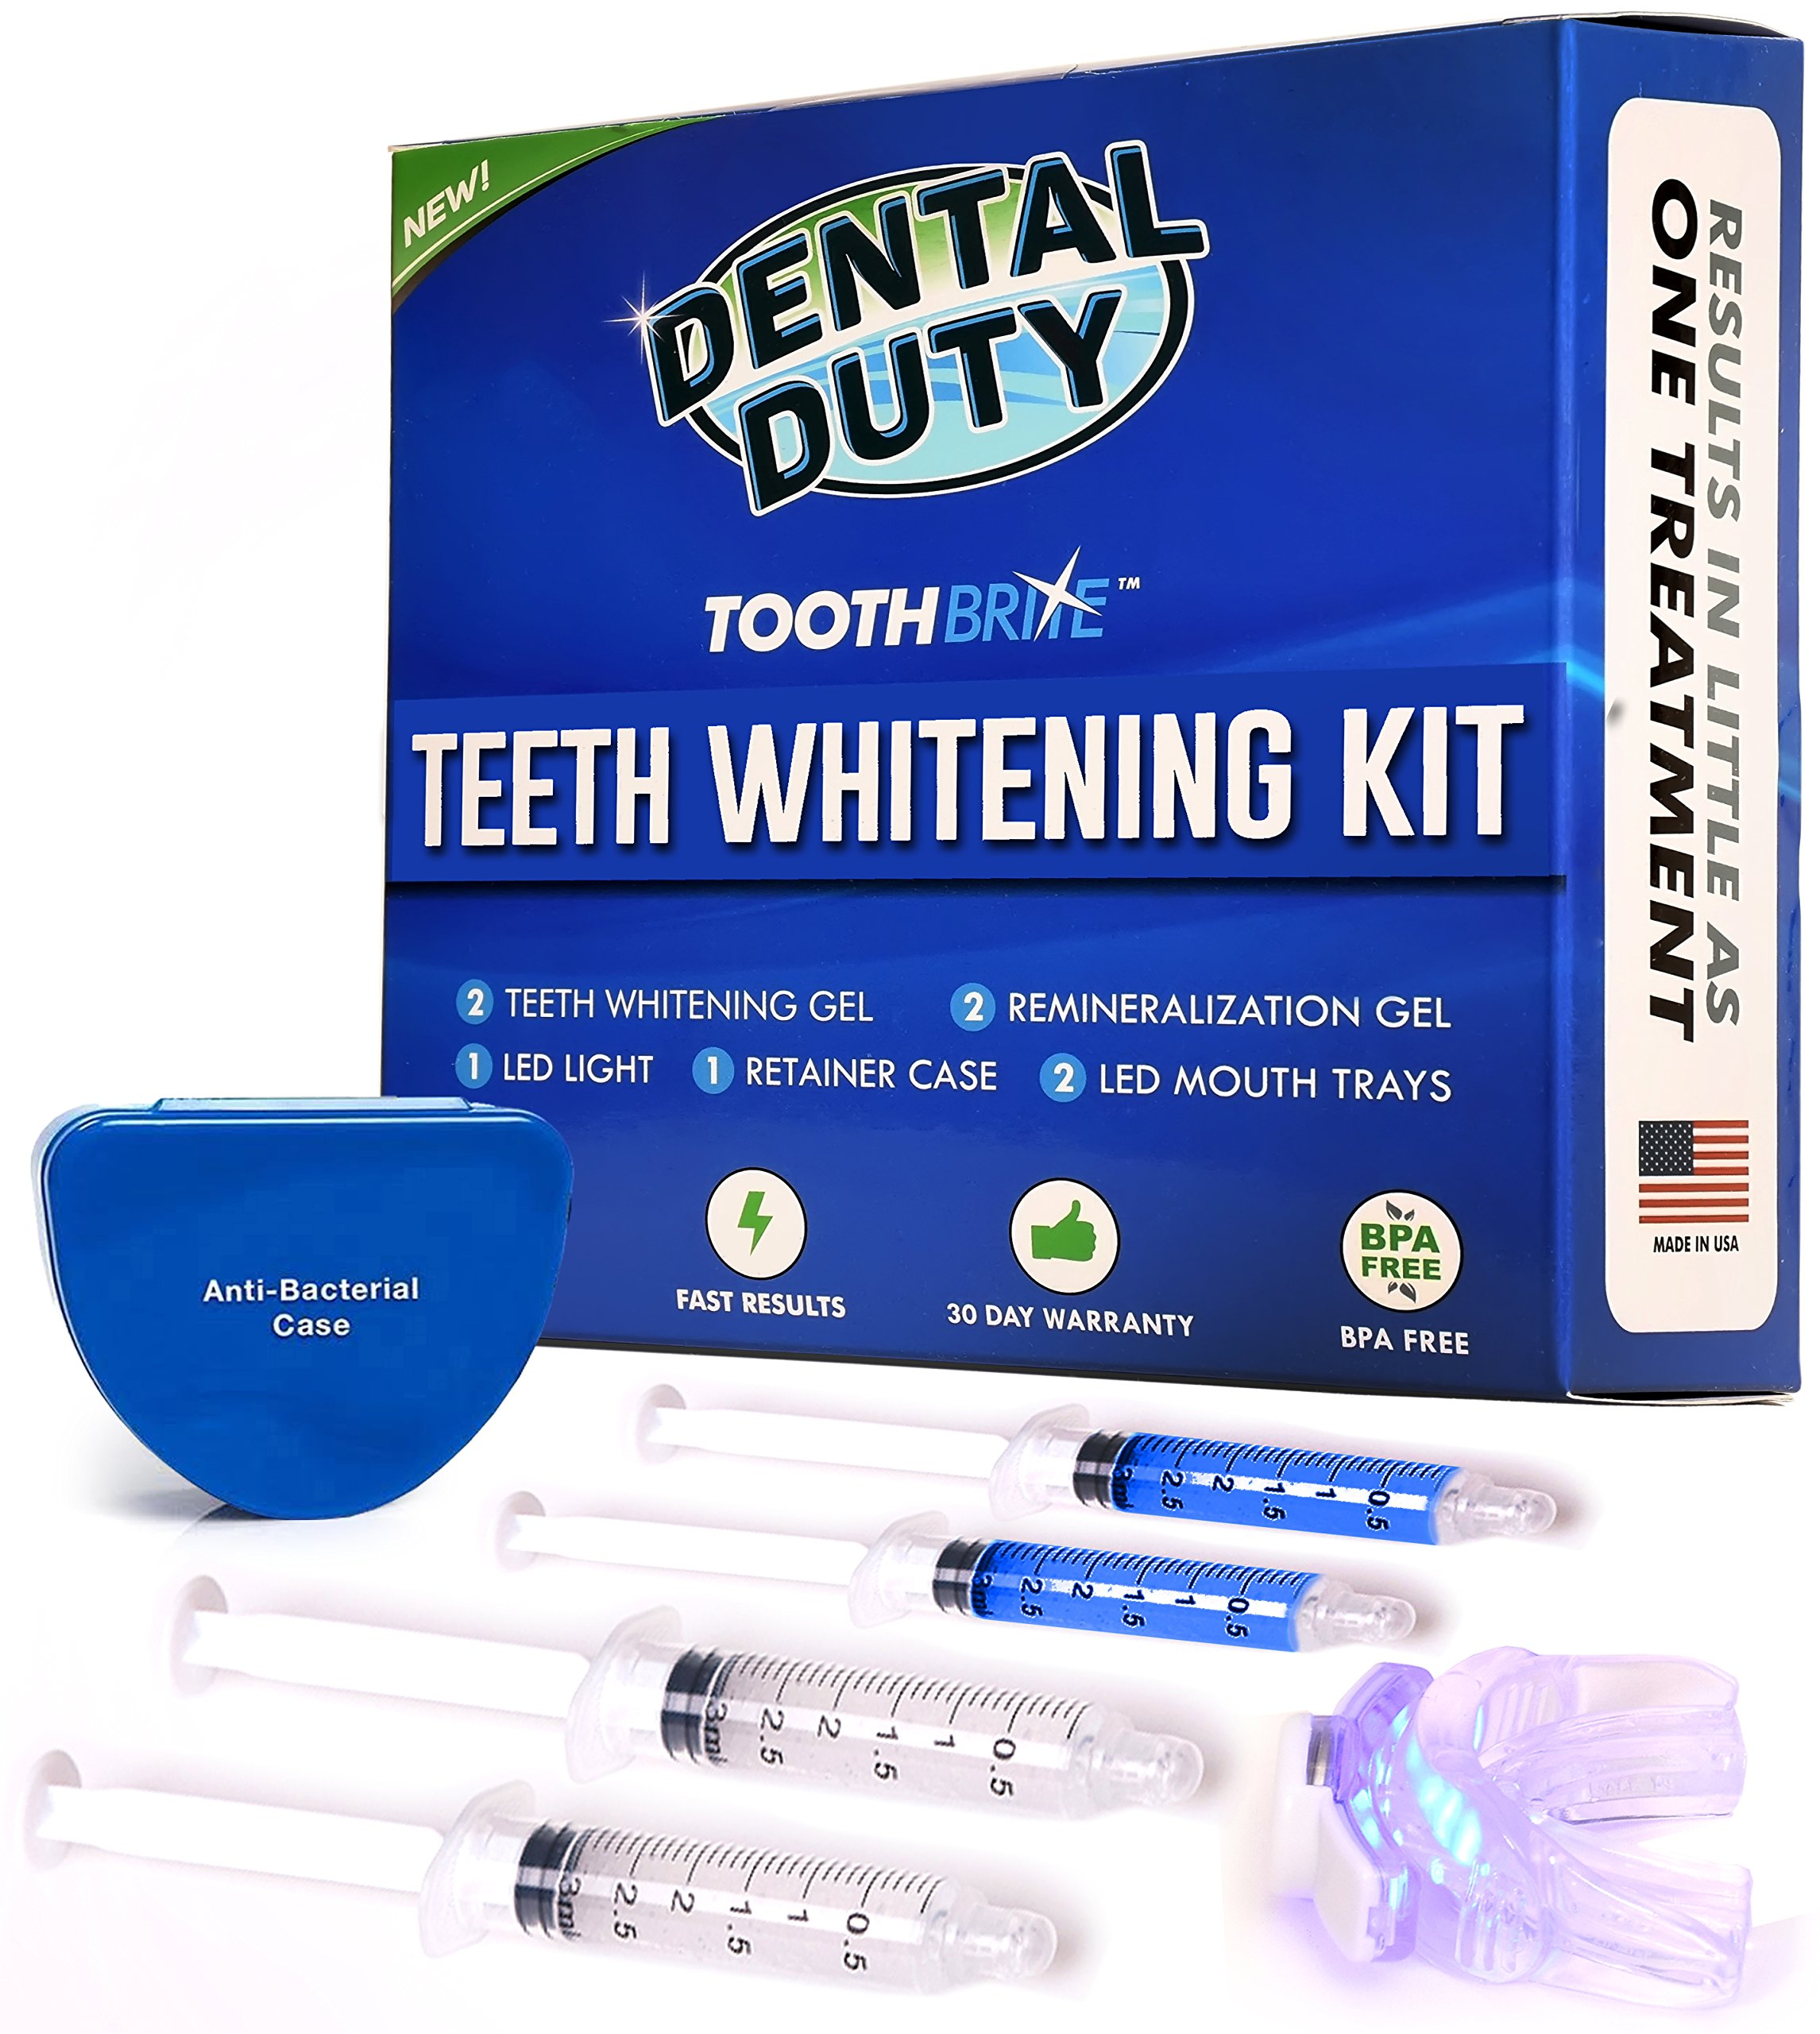 Professional Teeth Whitening Kit - Made in USA - includes 2 Whitening Gel, 2 Tooth Remineralization Gel, Whitening Trays and LED Accelerator Whitener Light for Faster Results.